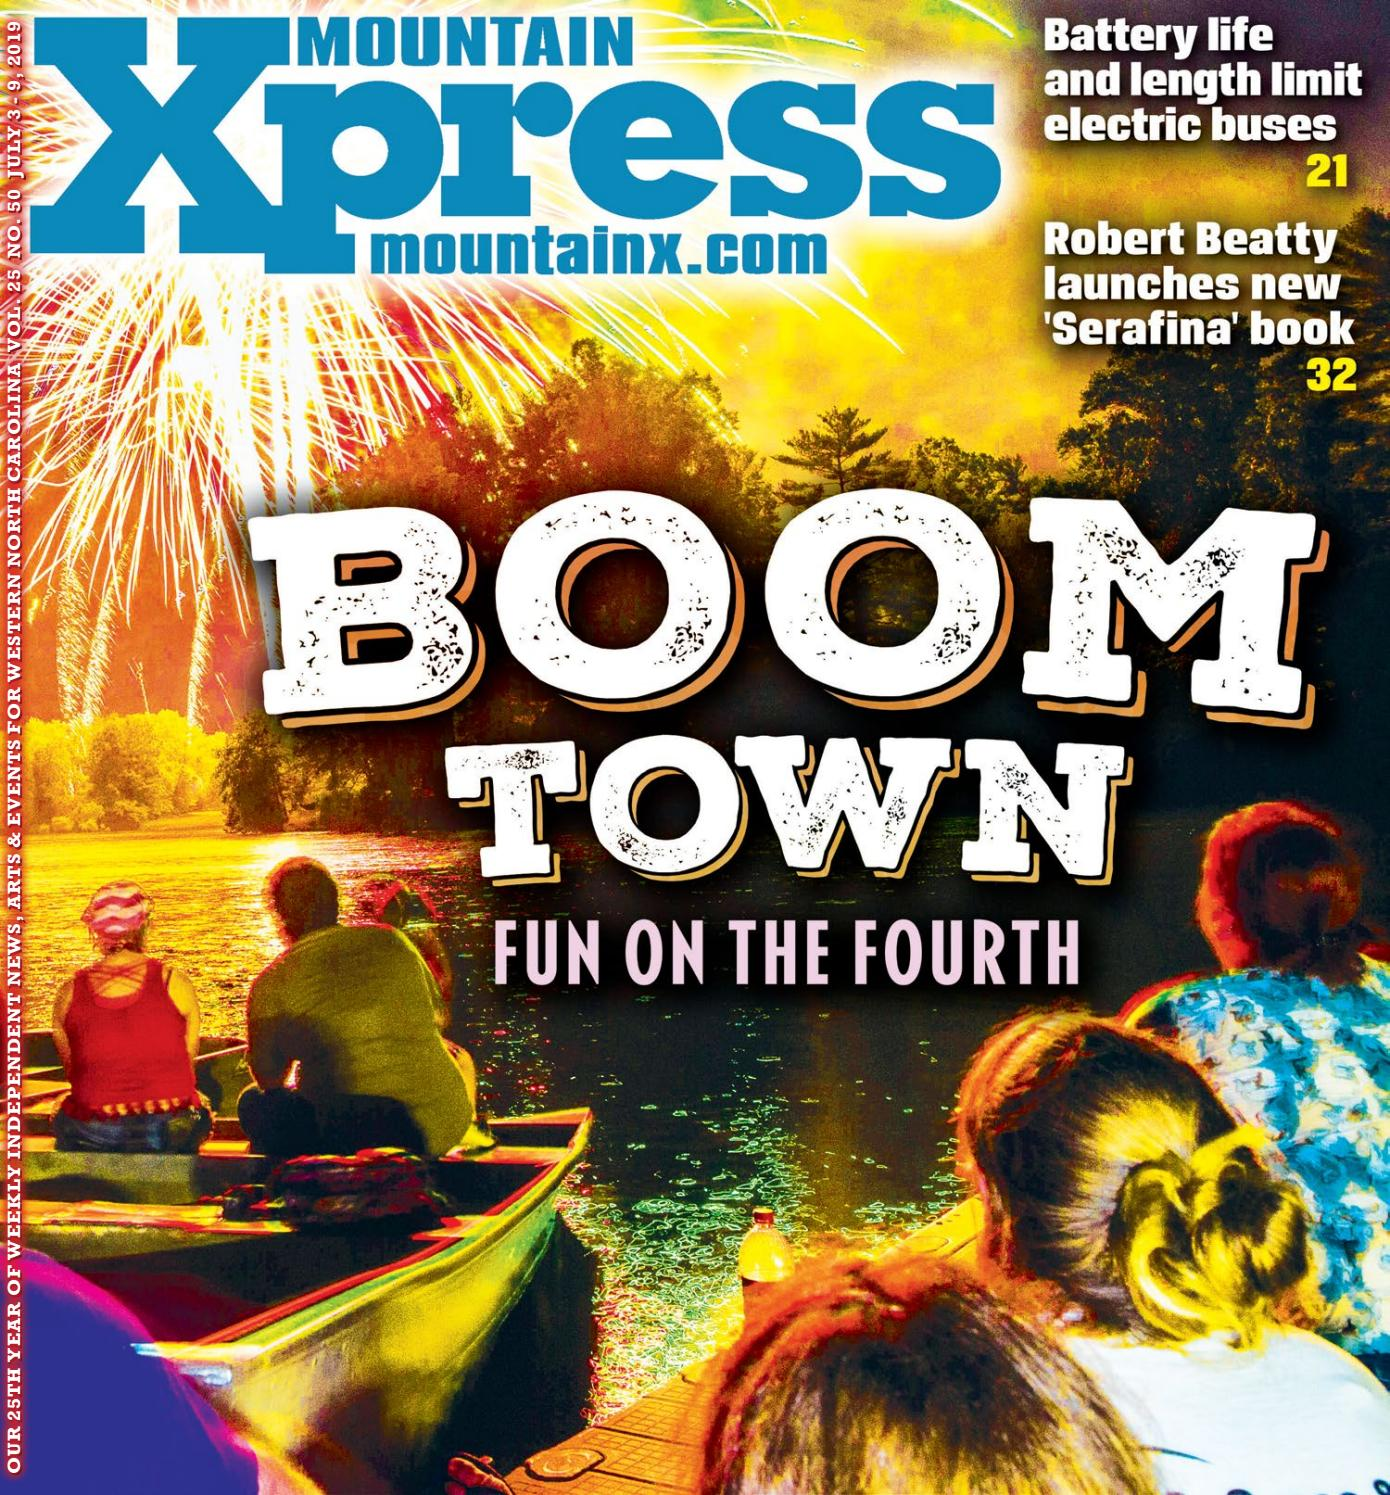 Mountain Xpress 07 03 19 by Mountain Xpress - issuu